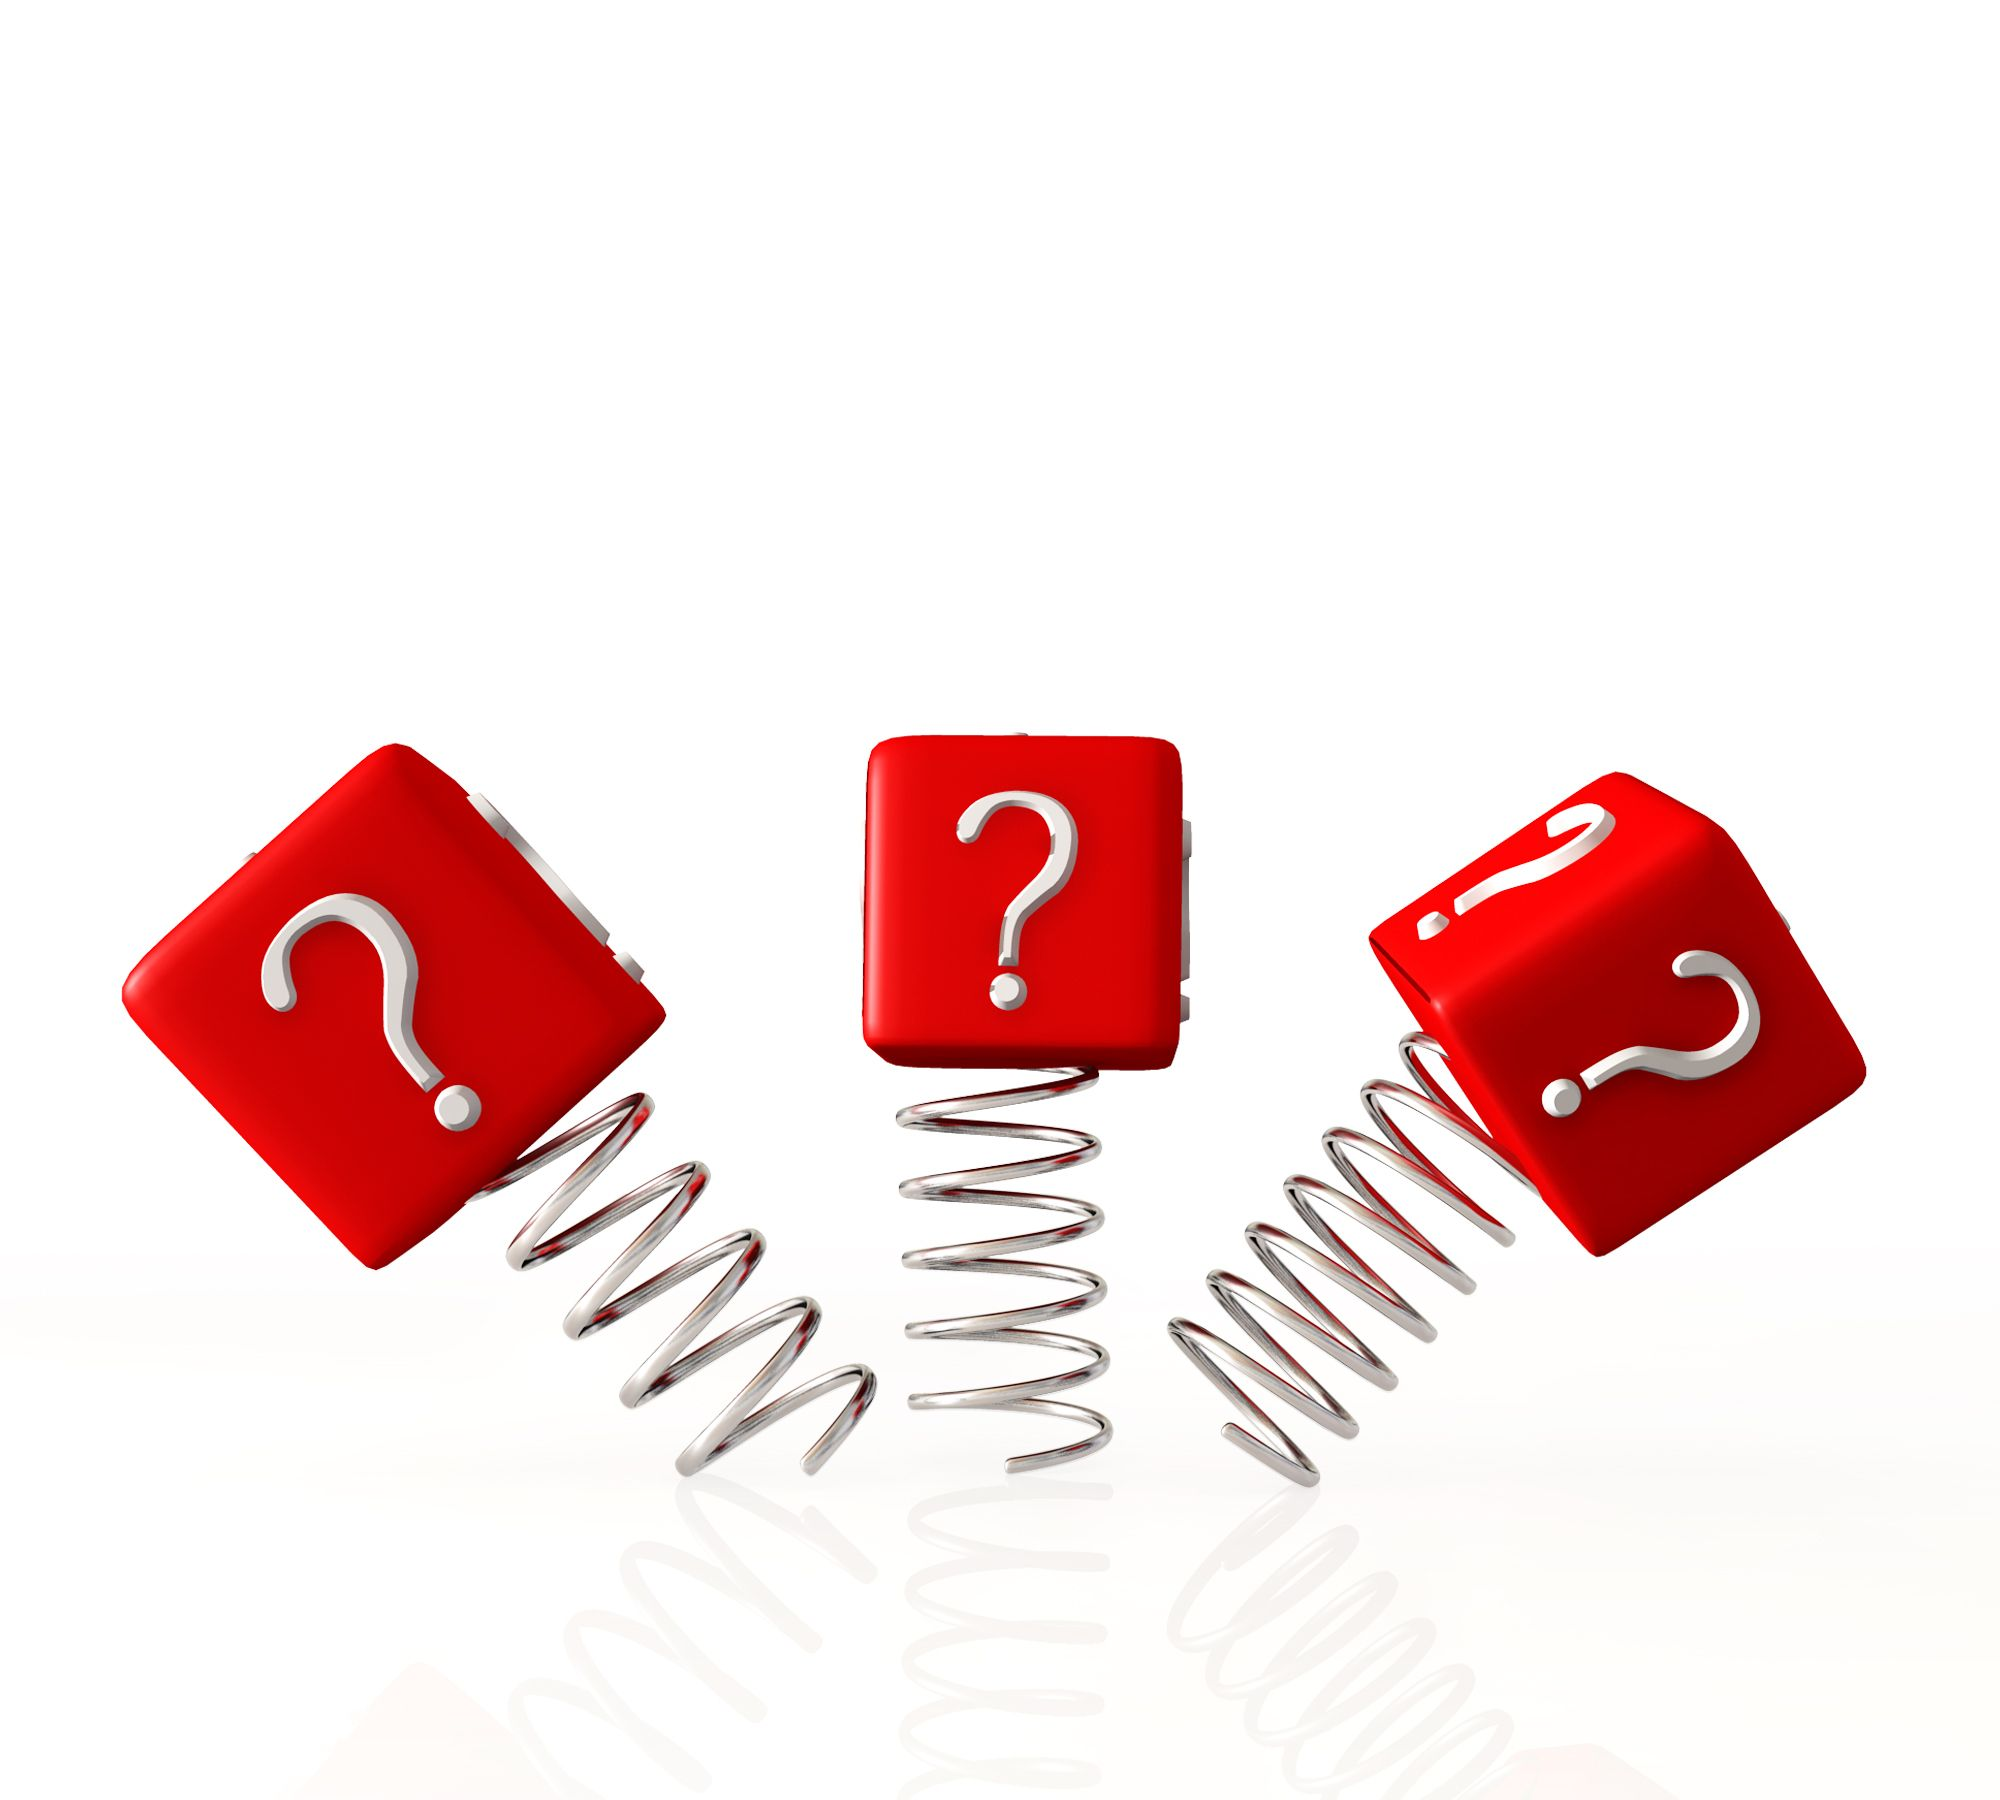 0914 Question Marks On Red Cubes And Springs Graphic Stock Photo ...